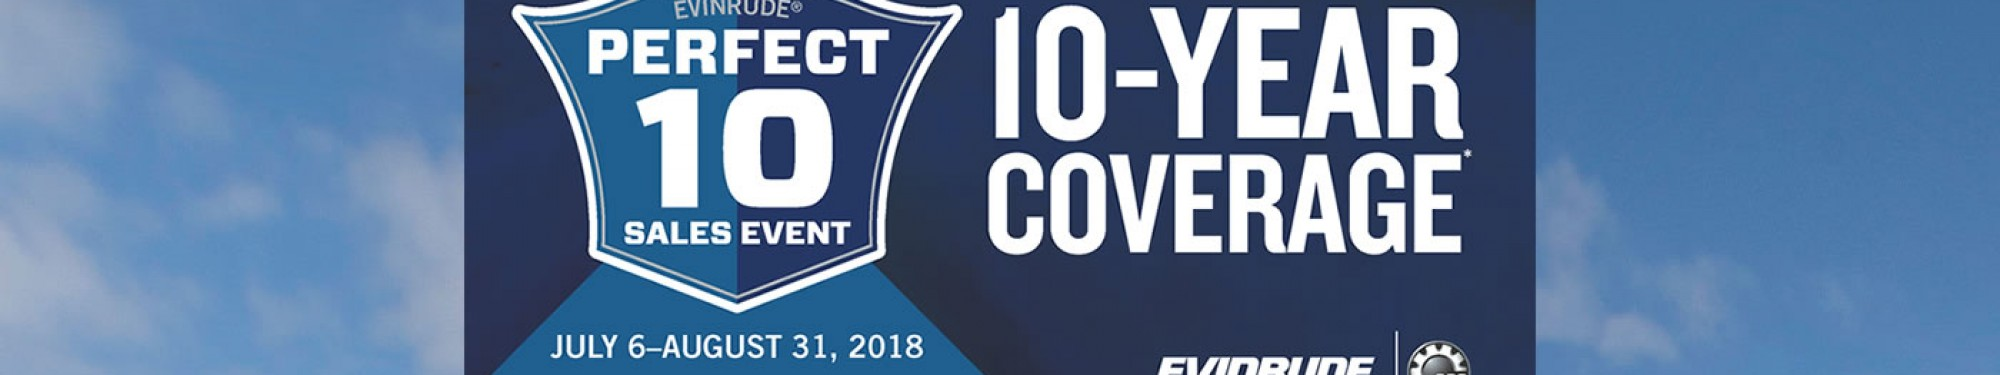 10 Year Coverage on Evinrude Engines at Anchor Marine